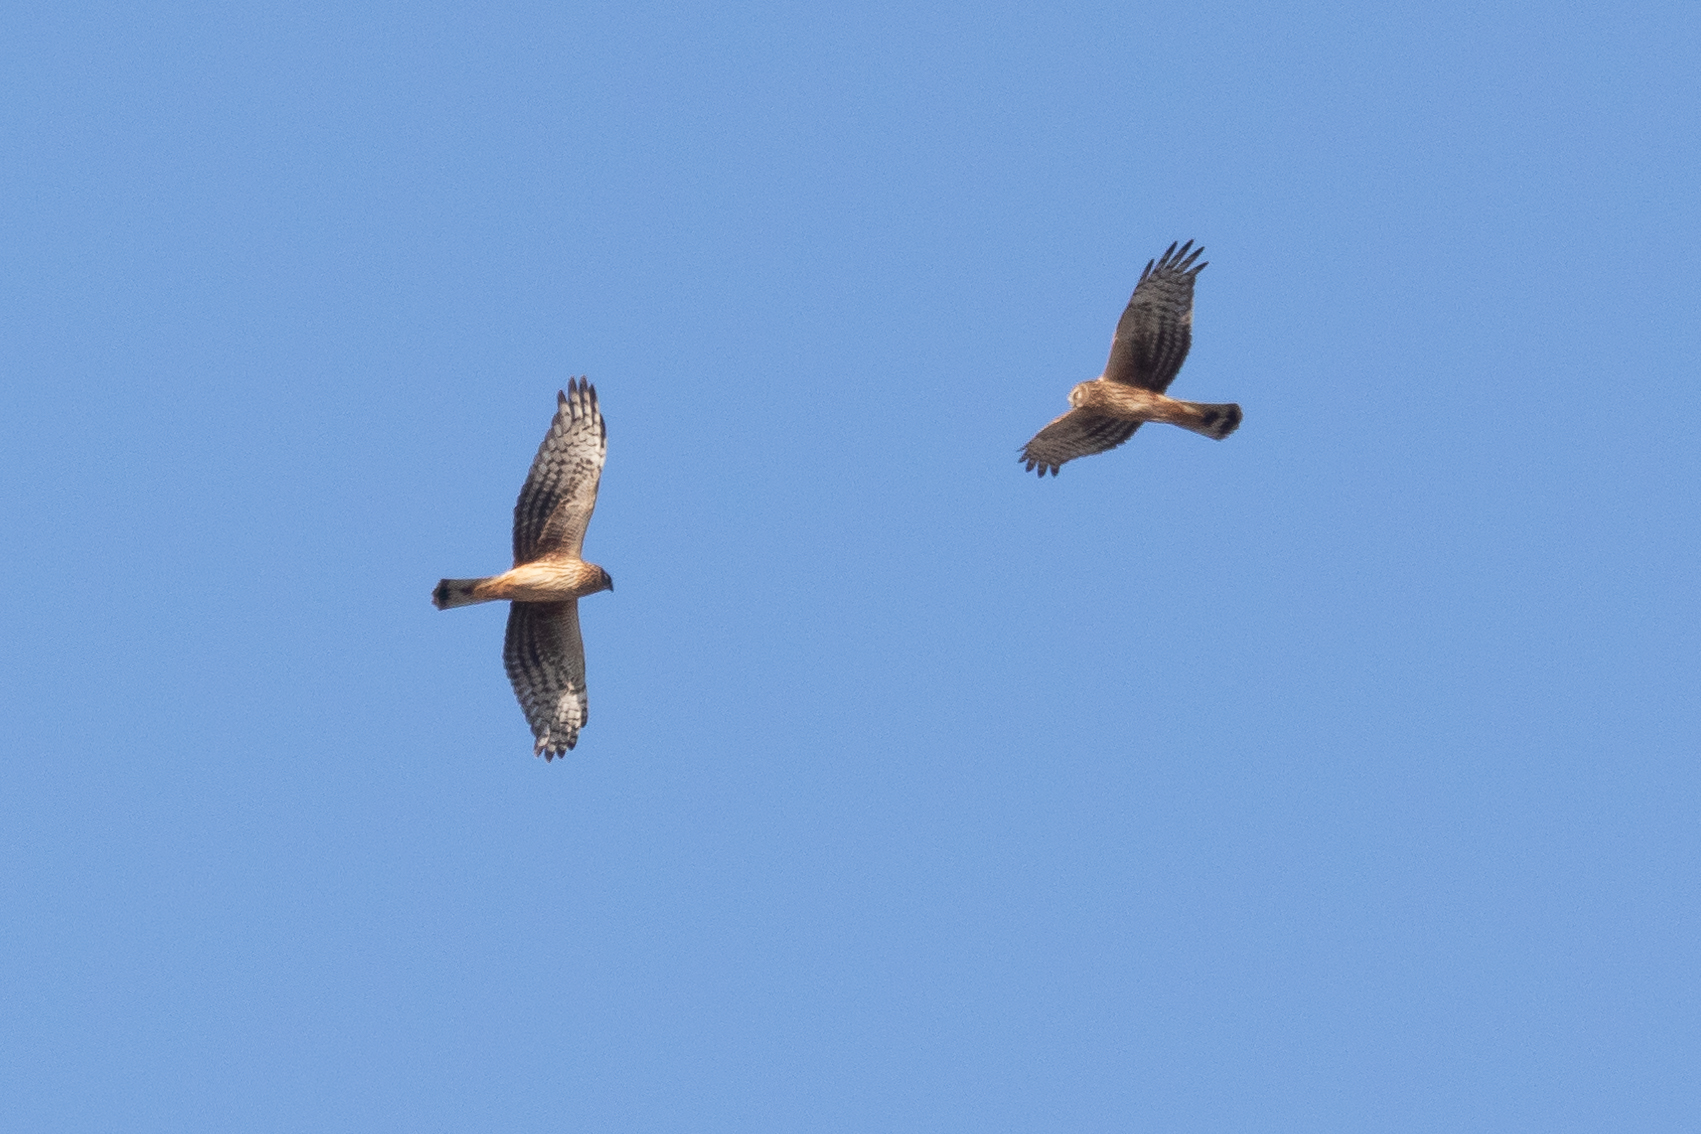 Two juvenile male Hen Harriers flying so close together they can be photographed while both being in focus.